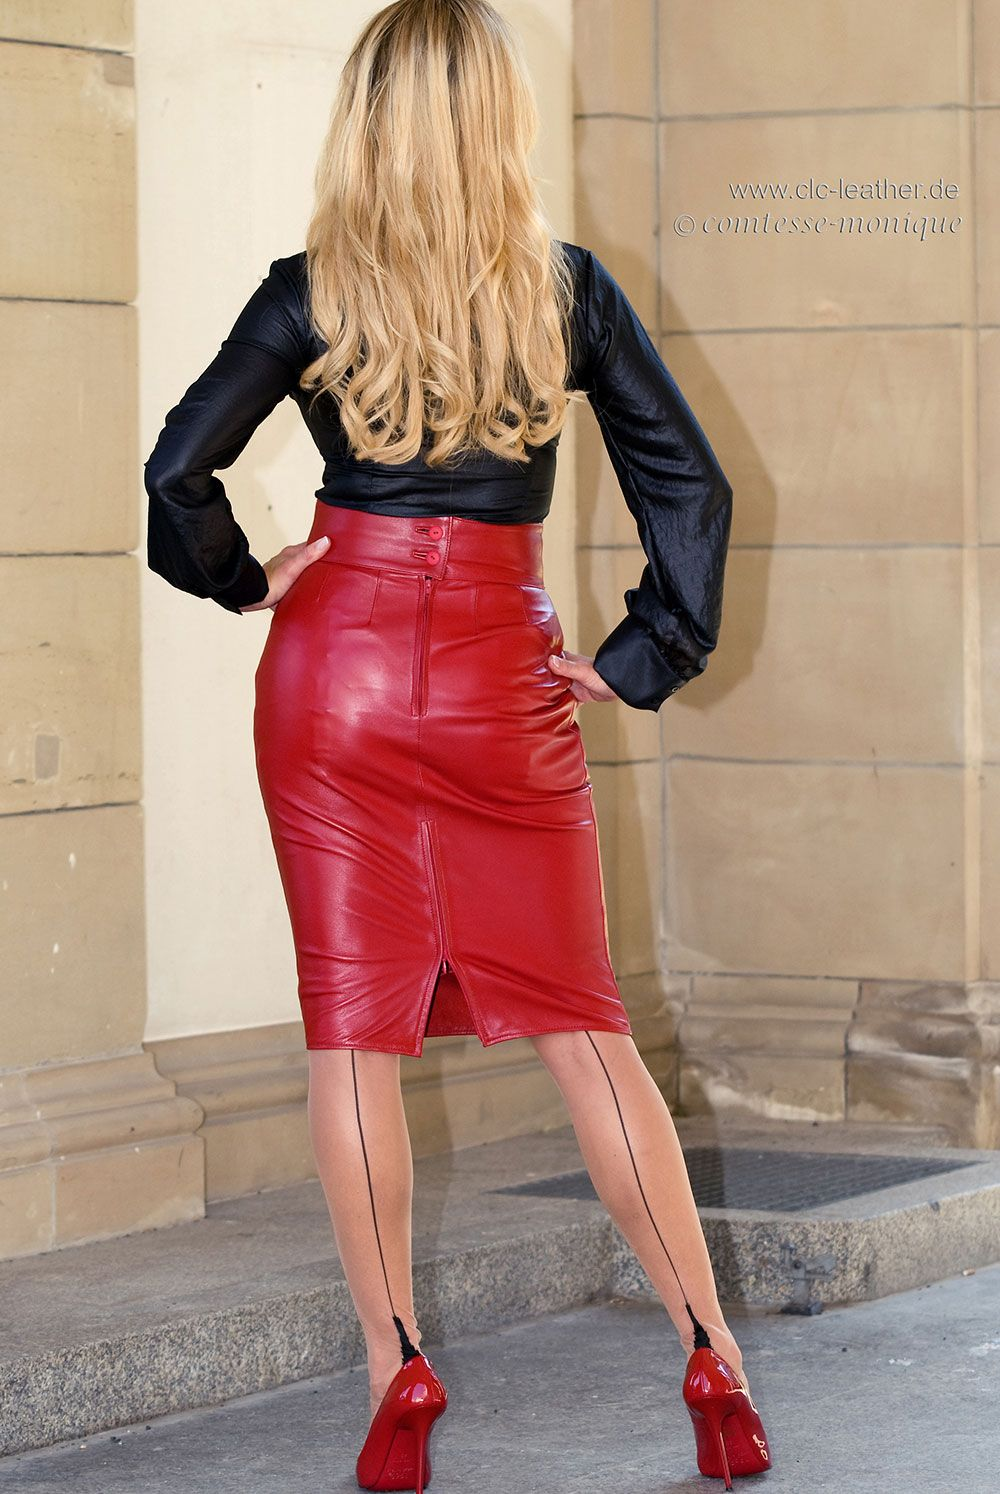 Comtesse Monique Tight Leather Pencil Skirt And Seamed Stockings